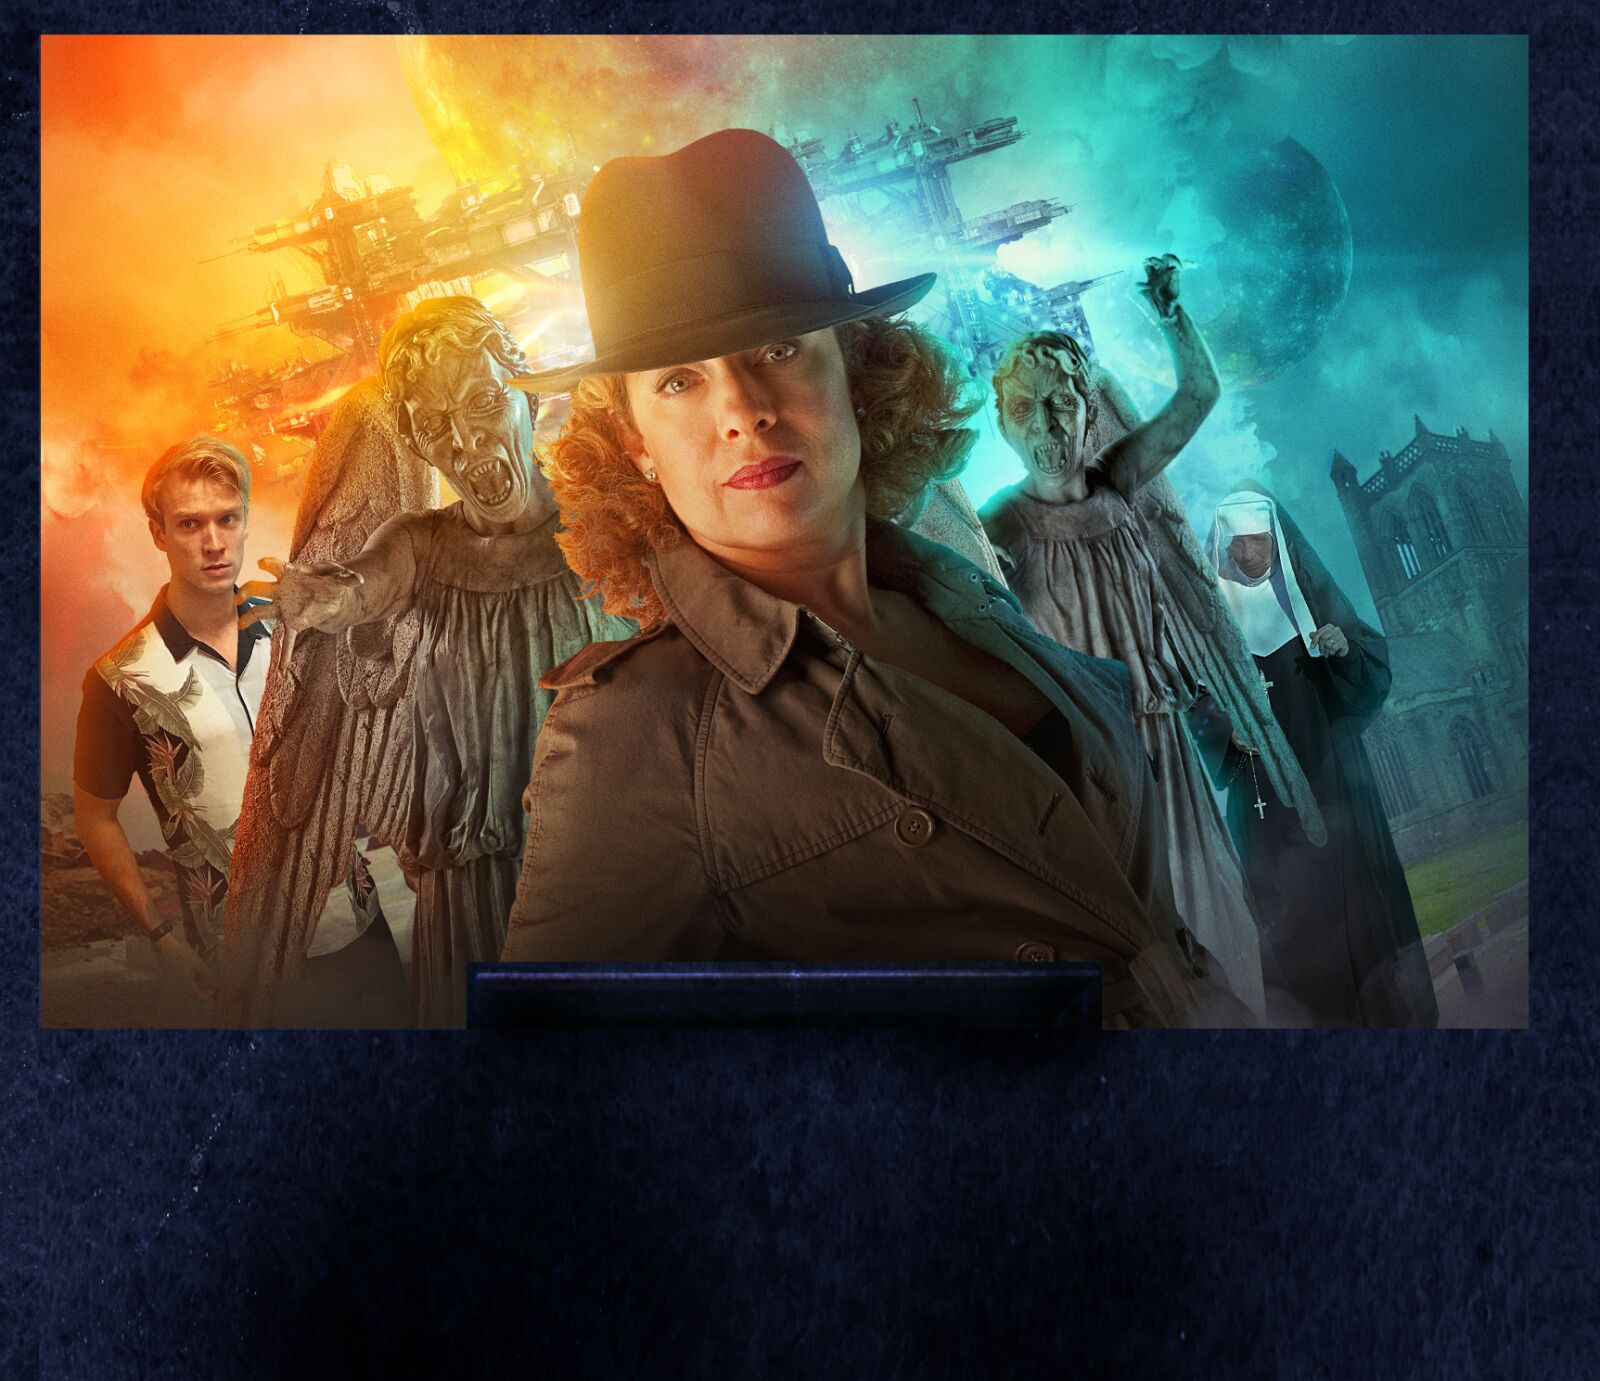 Doctor Who review: Colony of Strangers is a dark Nordic Noir mystery for River Song